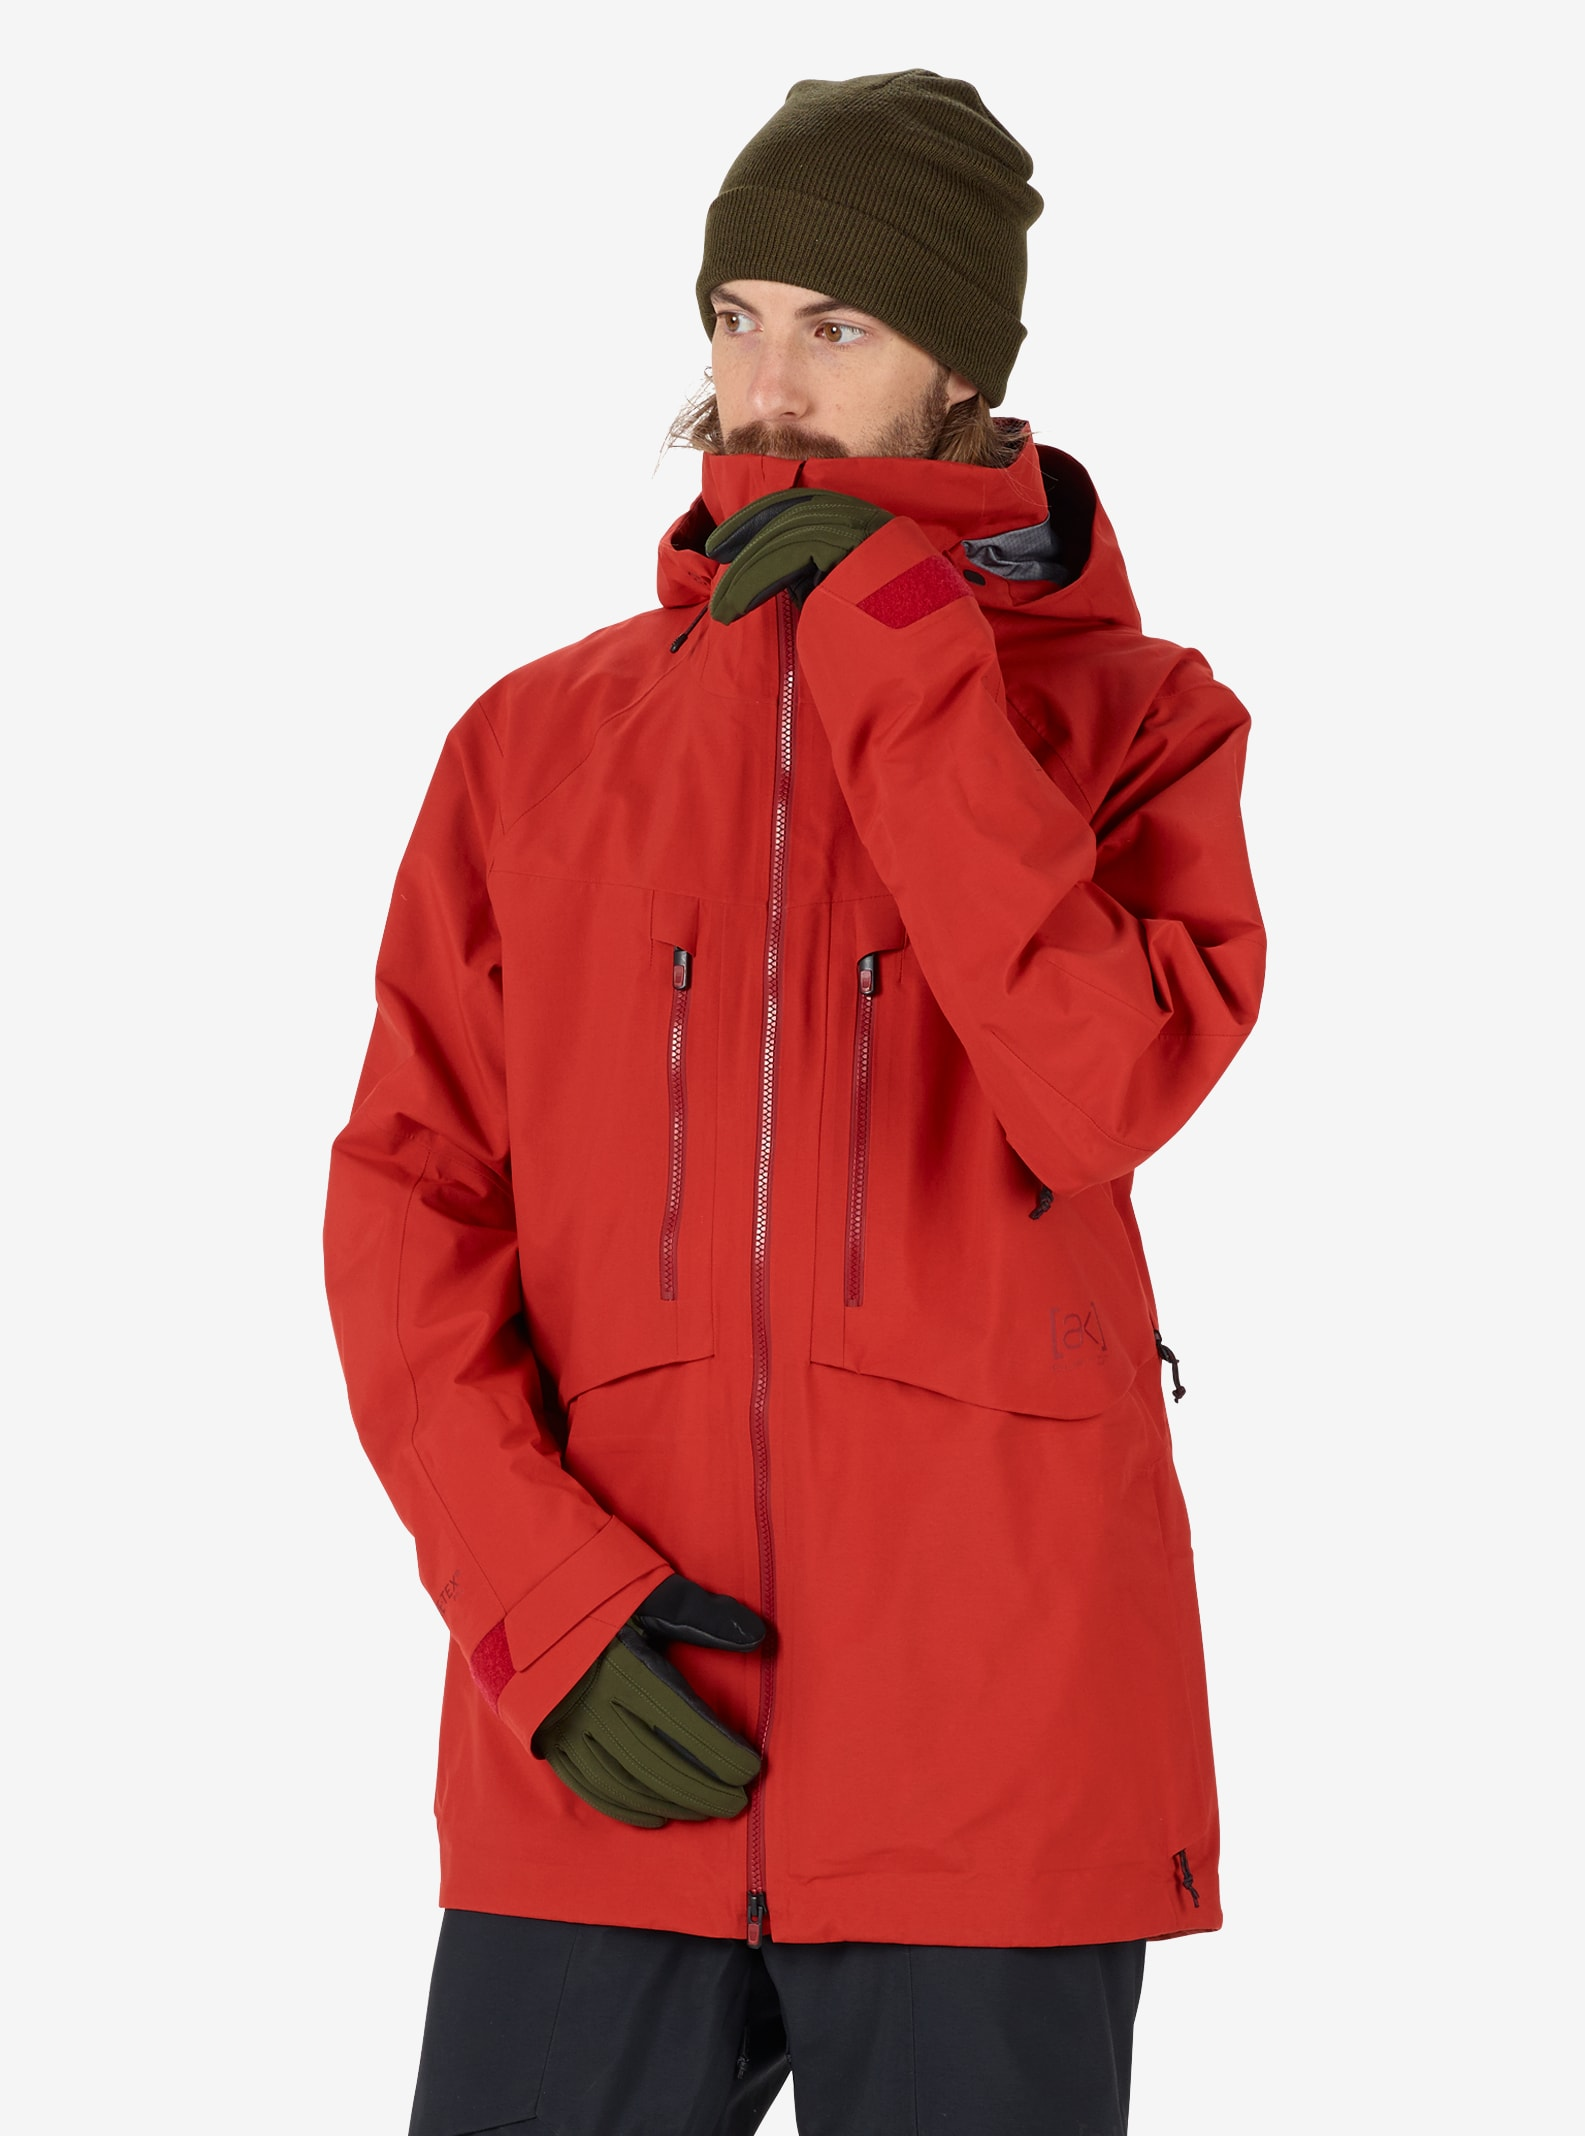 Men's Burton [ak] GORE‑TEX® 3L Hover Jacket shown in Bitters